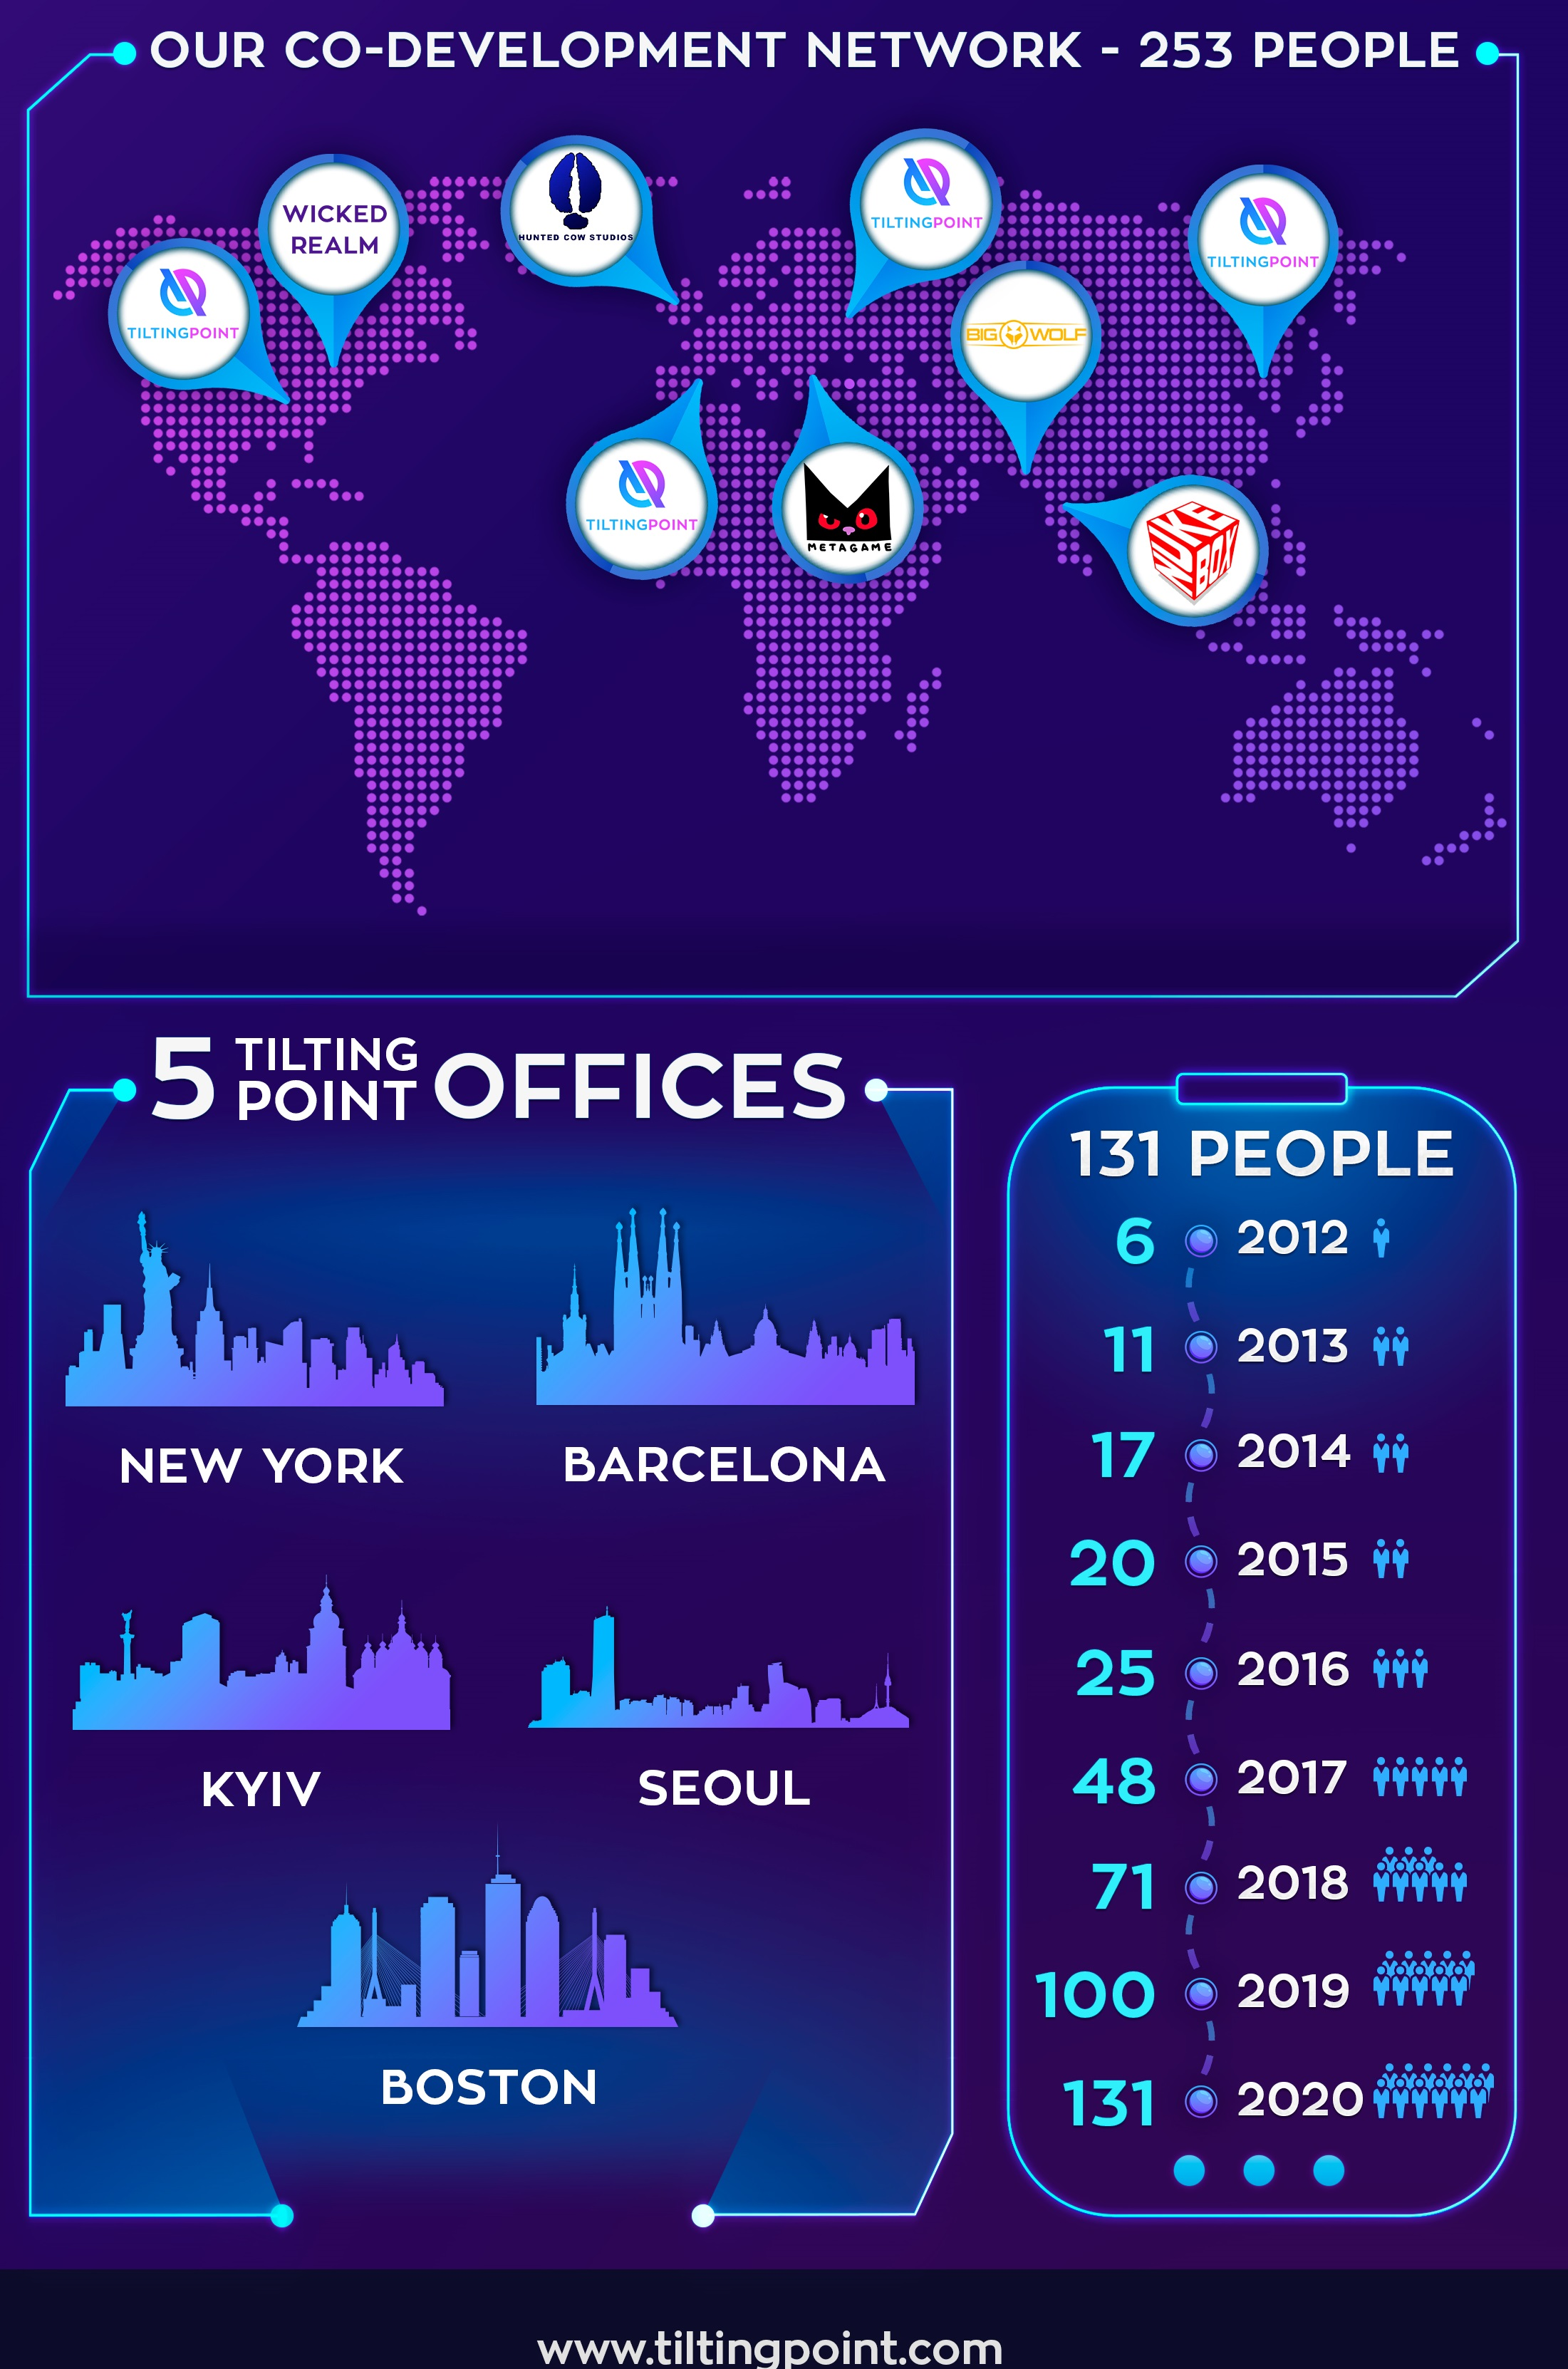 Tilting Point has 135 people across five offices.